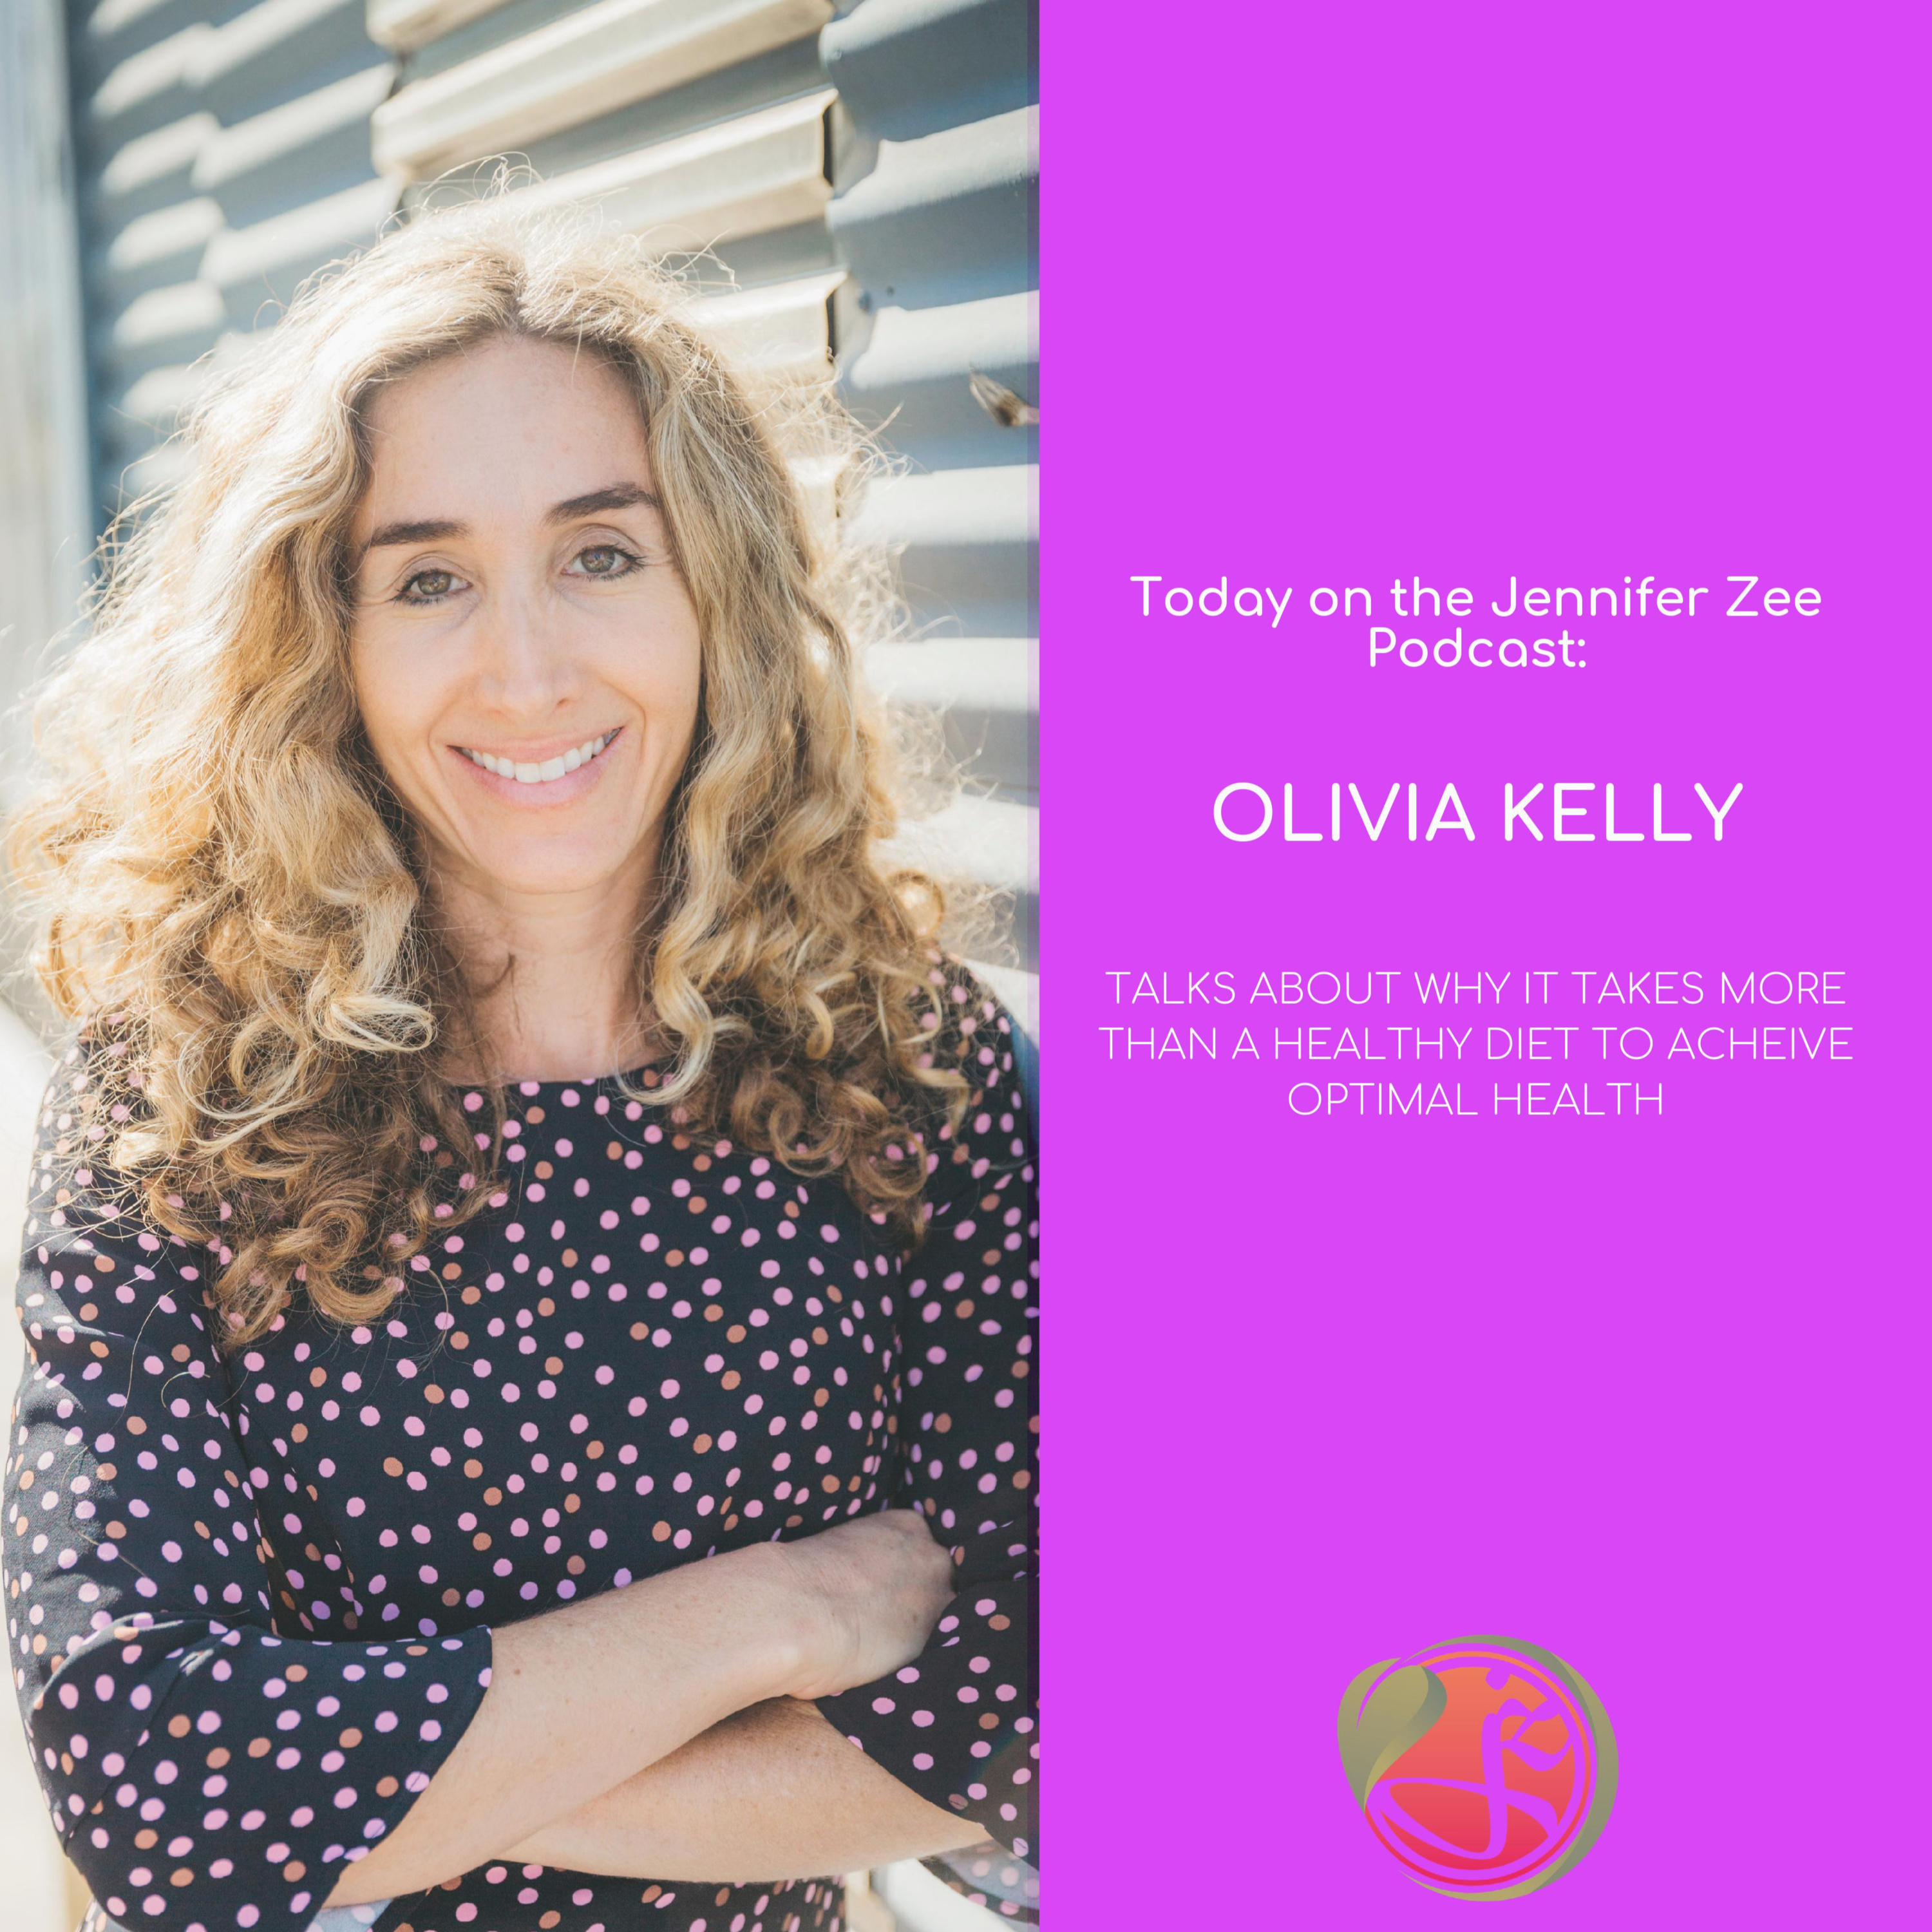 Why it Takes More Than a Healthy Diet to Achieve Optimal Health - with Olivia Kelly